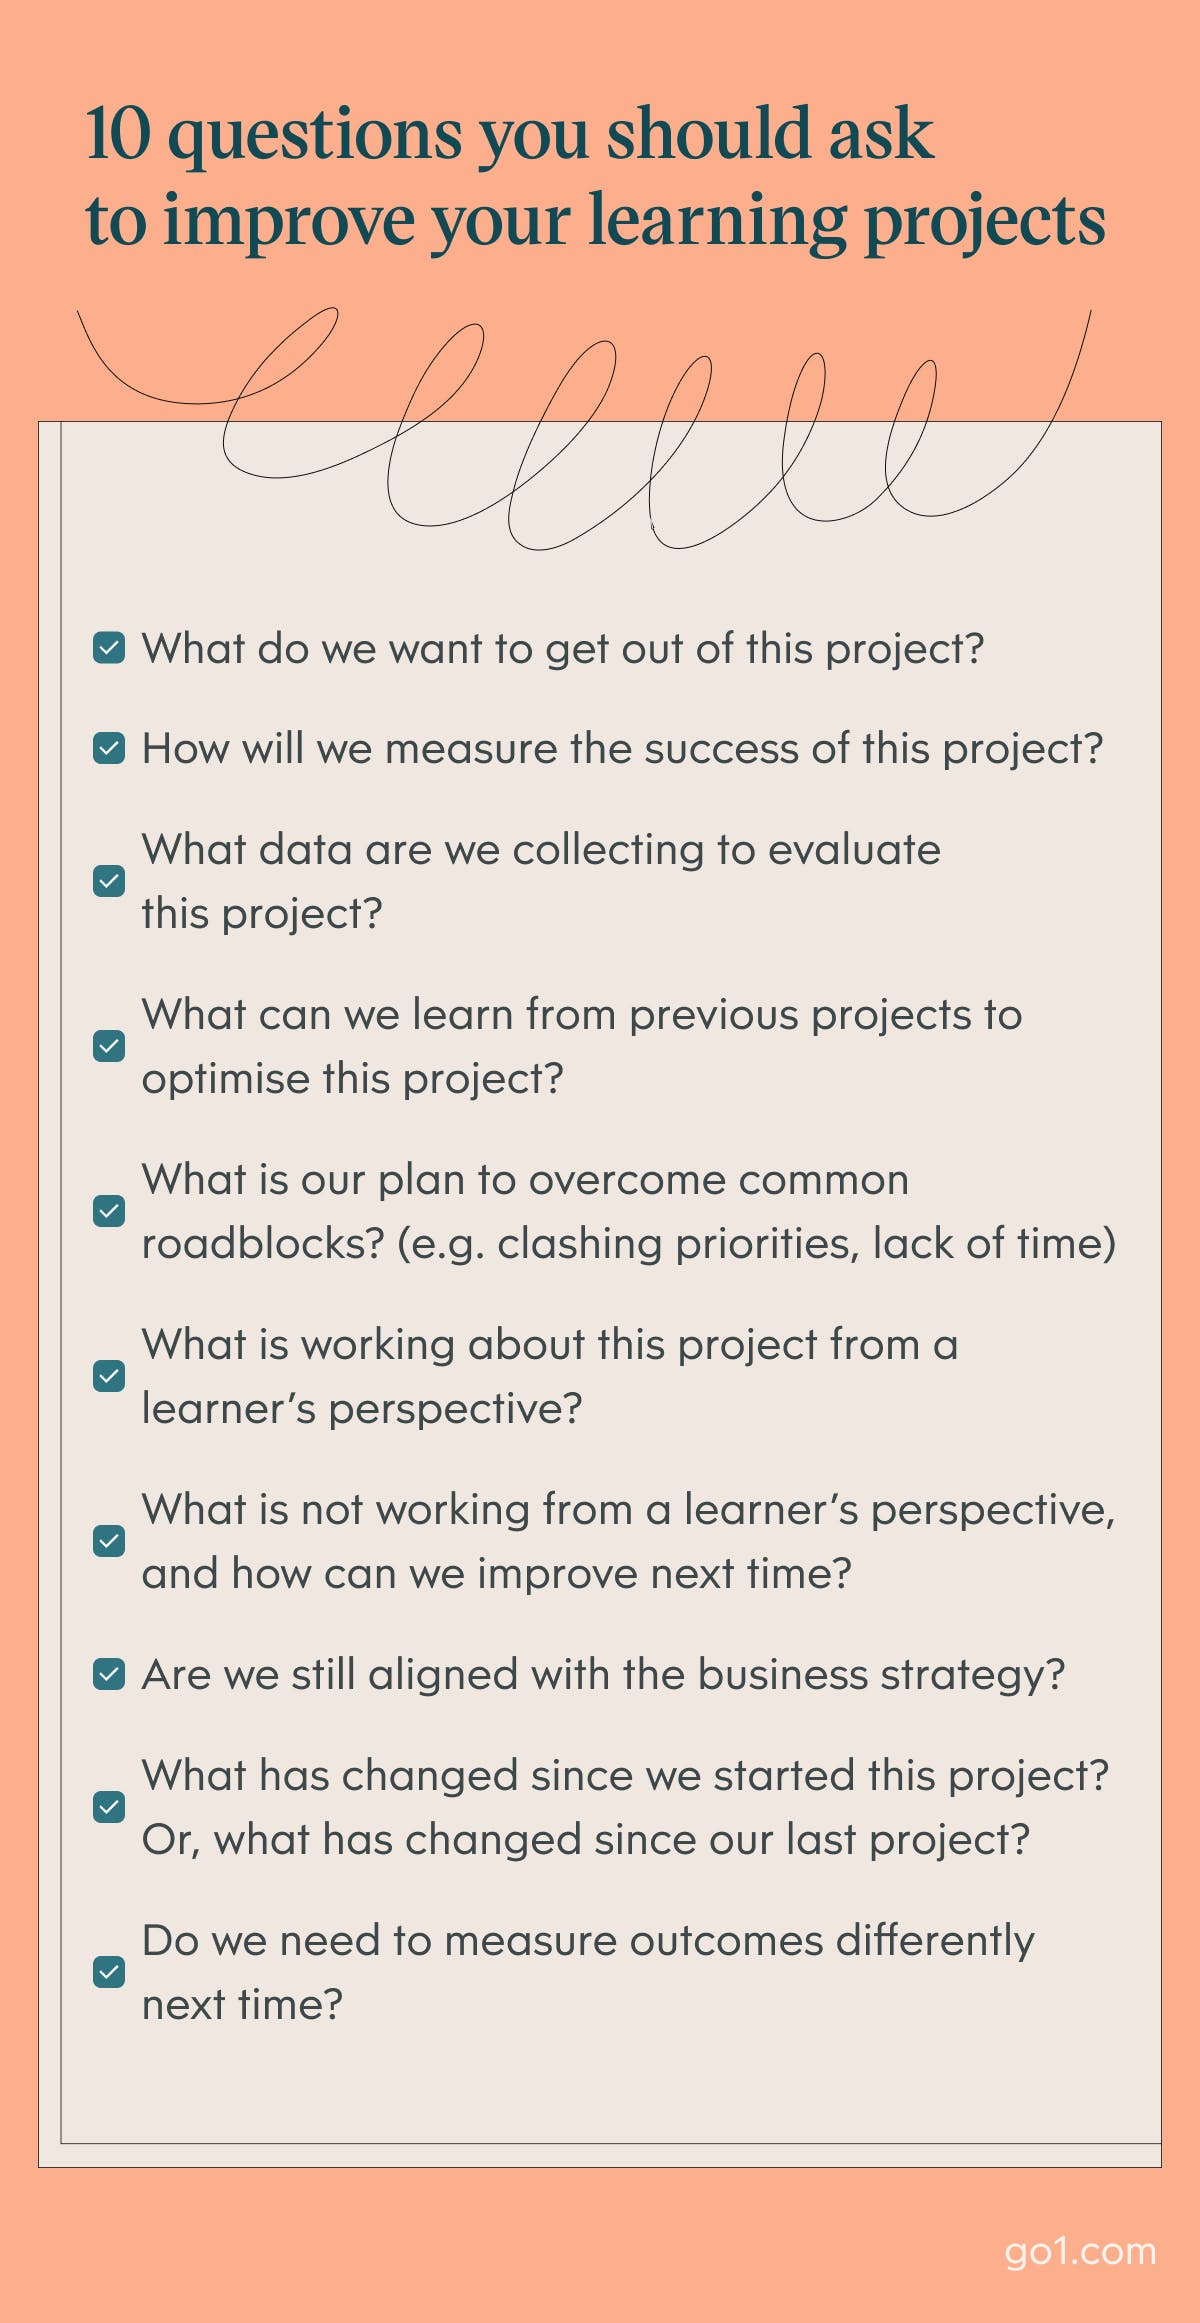 Infographic of 10 questions you should ask to improve your learning projects